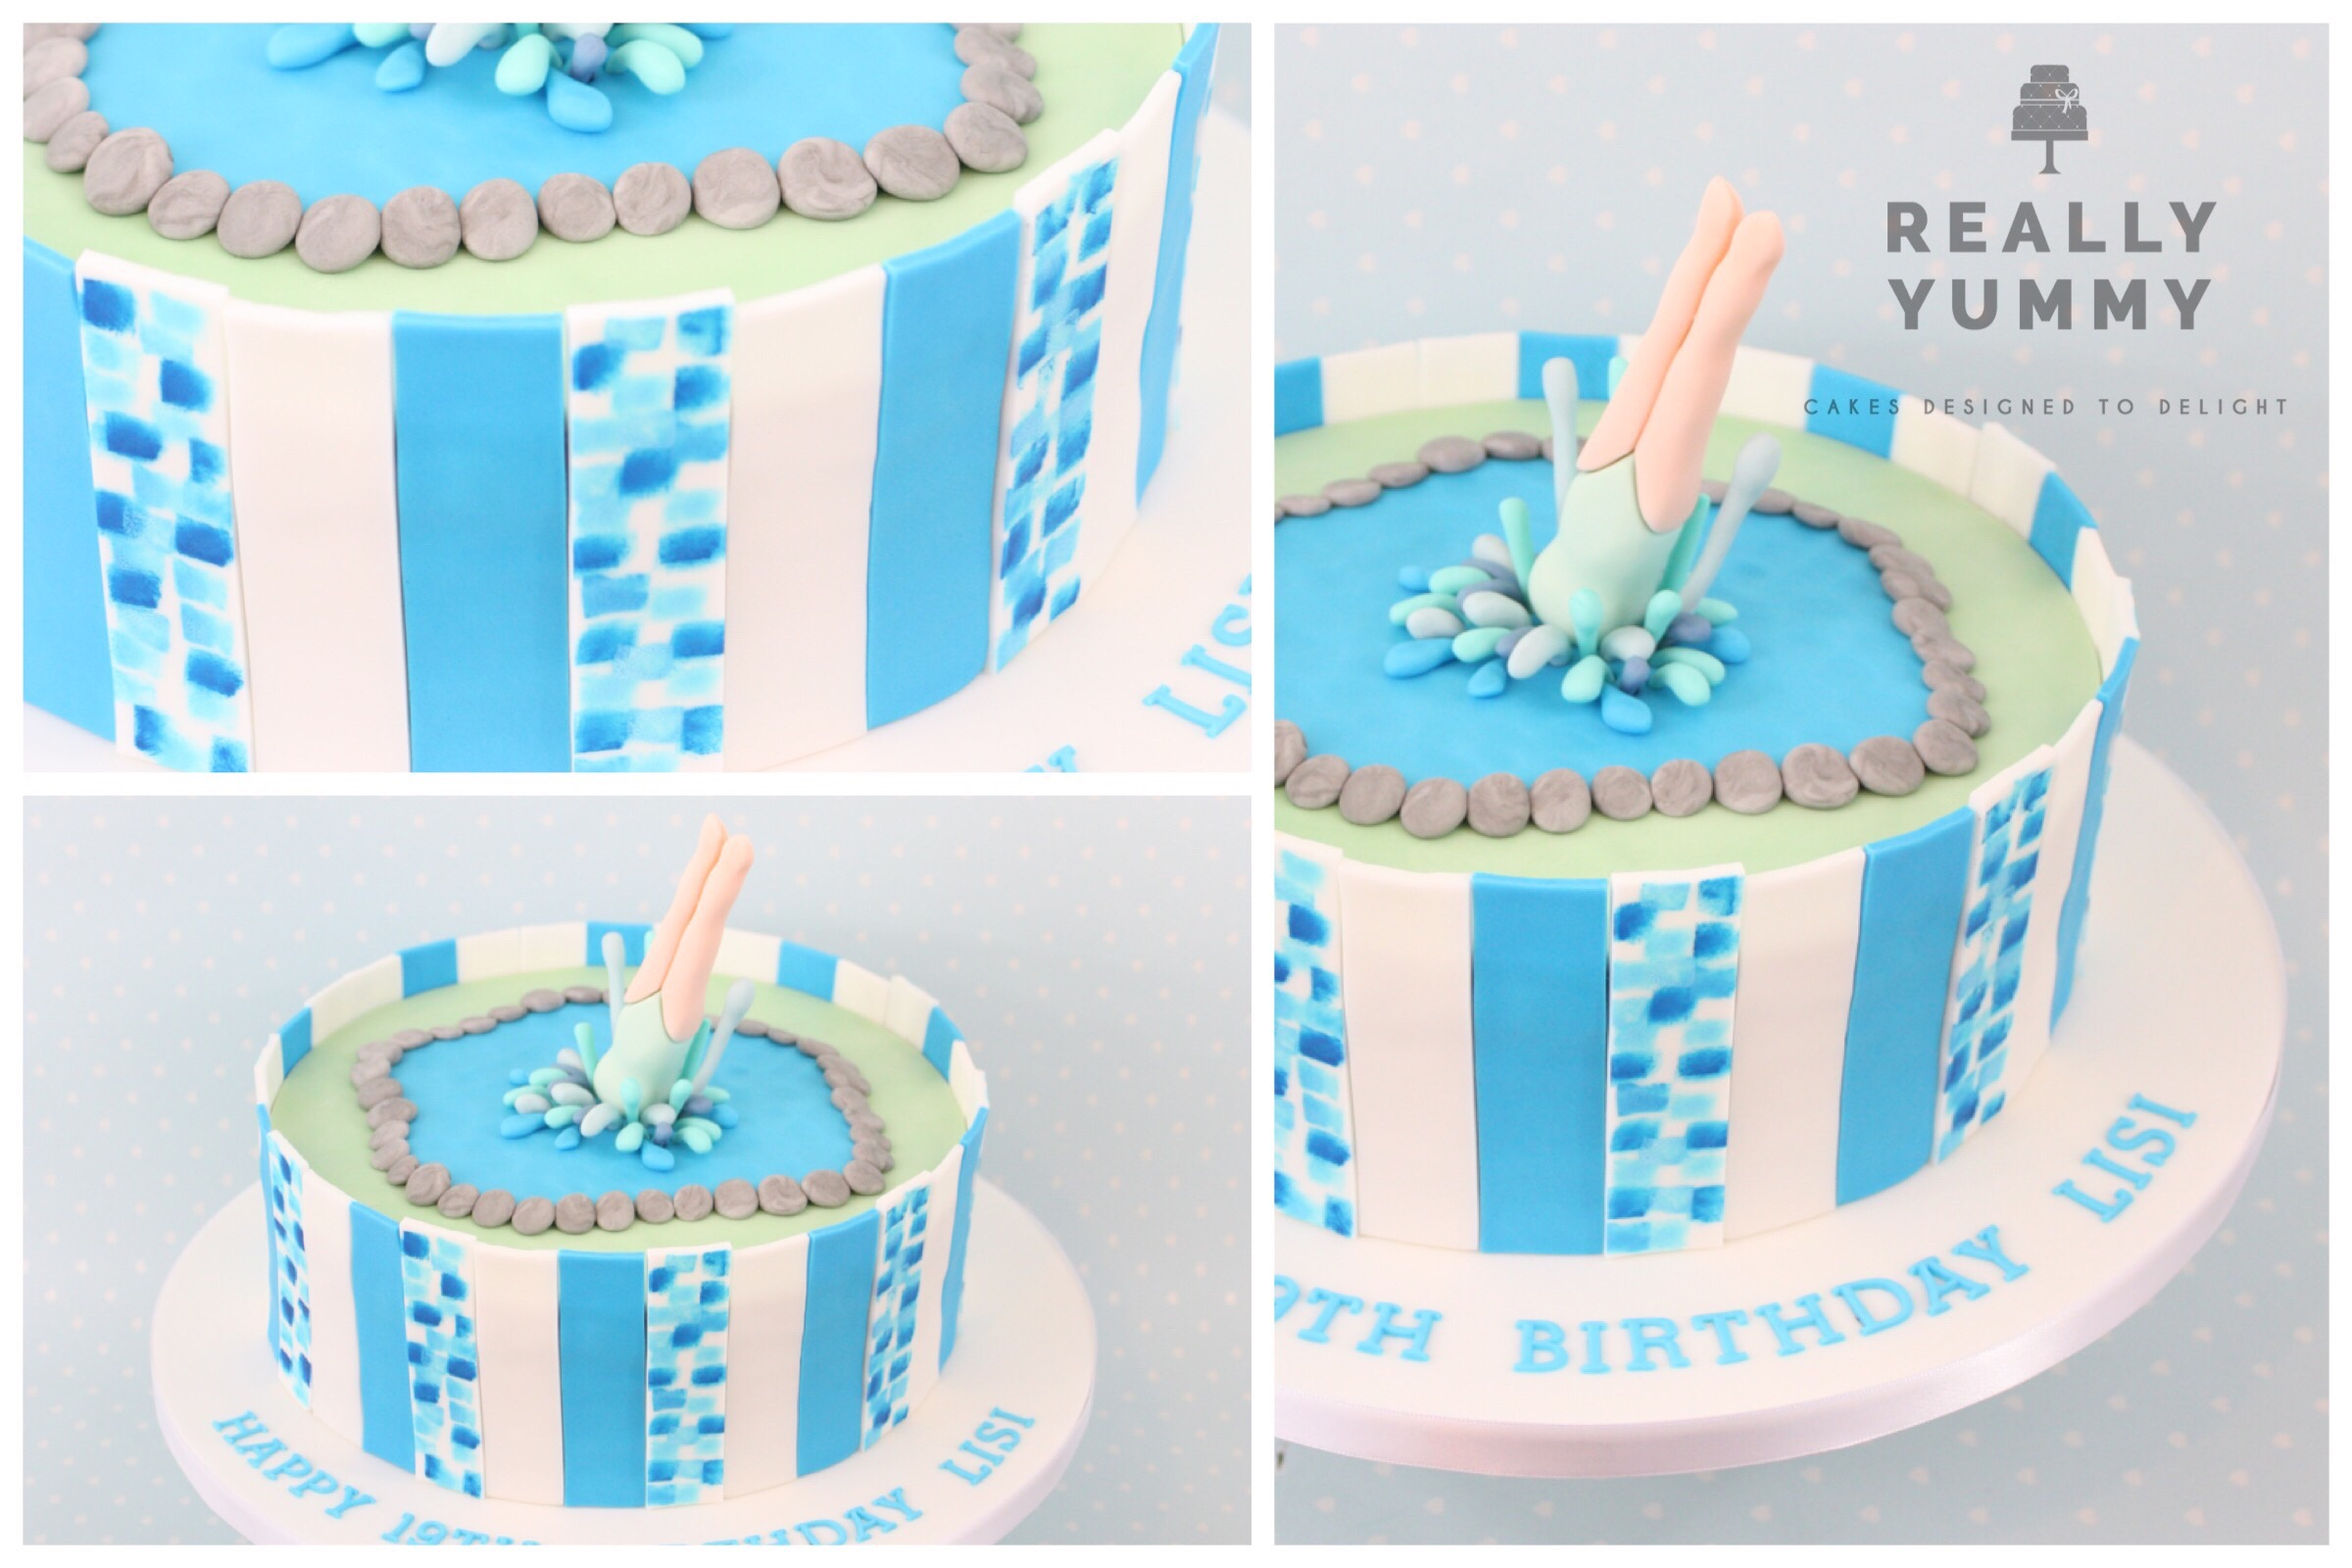 Pool party cake with diving lady